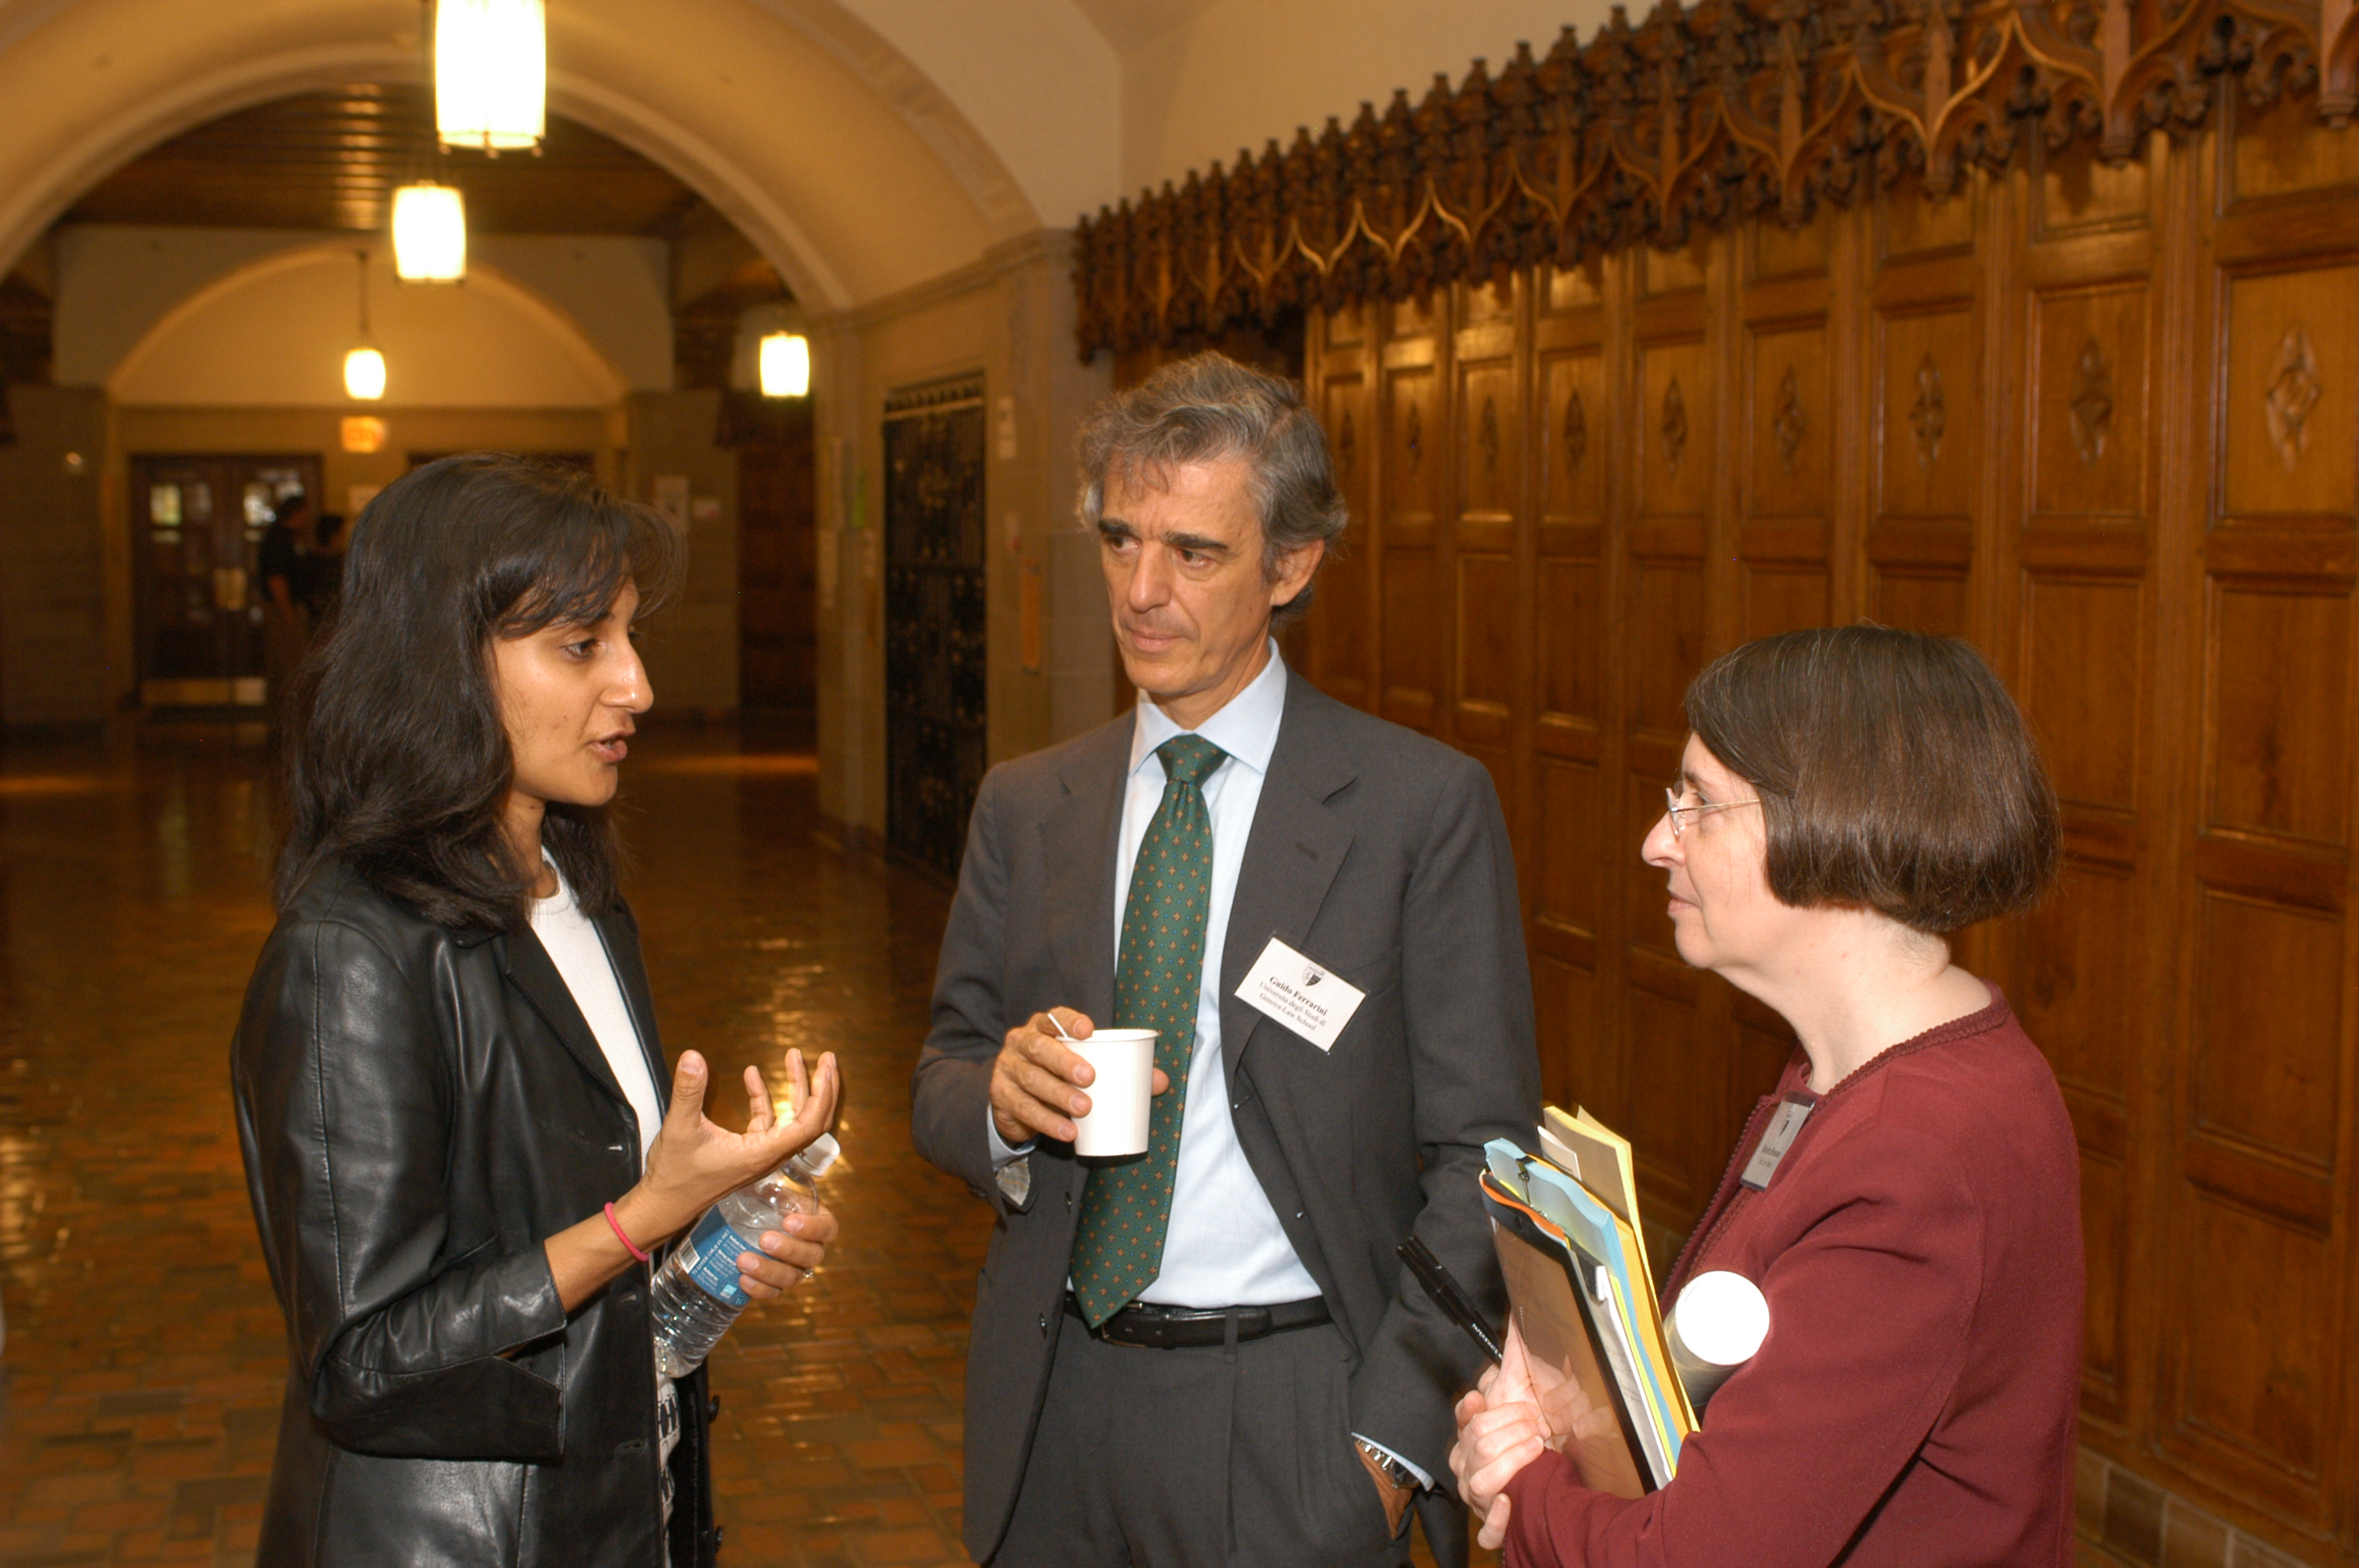 Queen's Law Prof. and YLS Visiting Prof. Anita Anand, U. of Genoa Business Law Prof. Guido Ferrarini LLM '78, and YLS Prof. and Center Director Roberta Romano '80